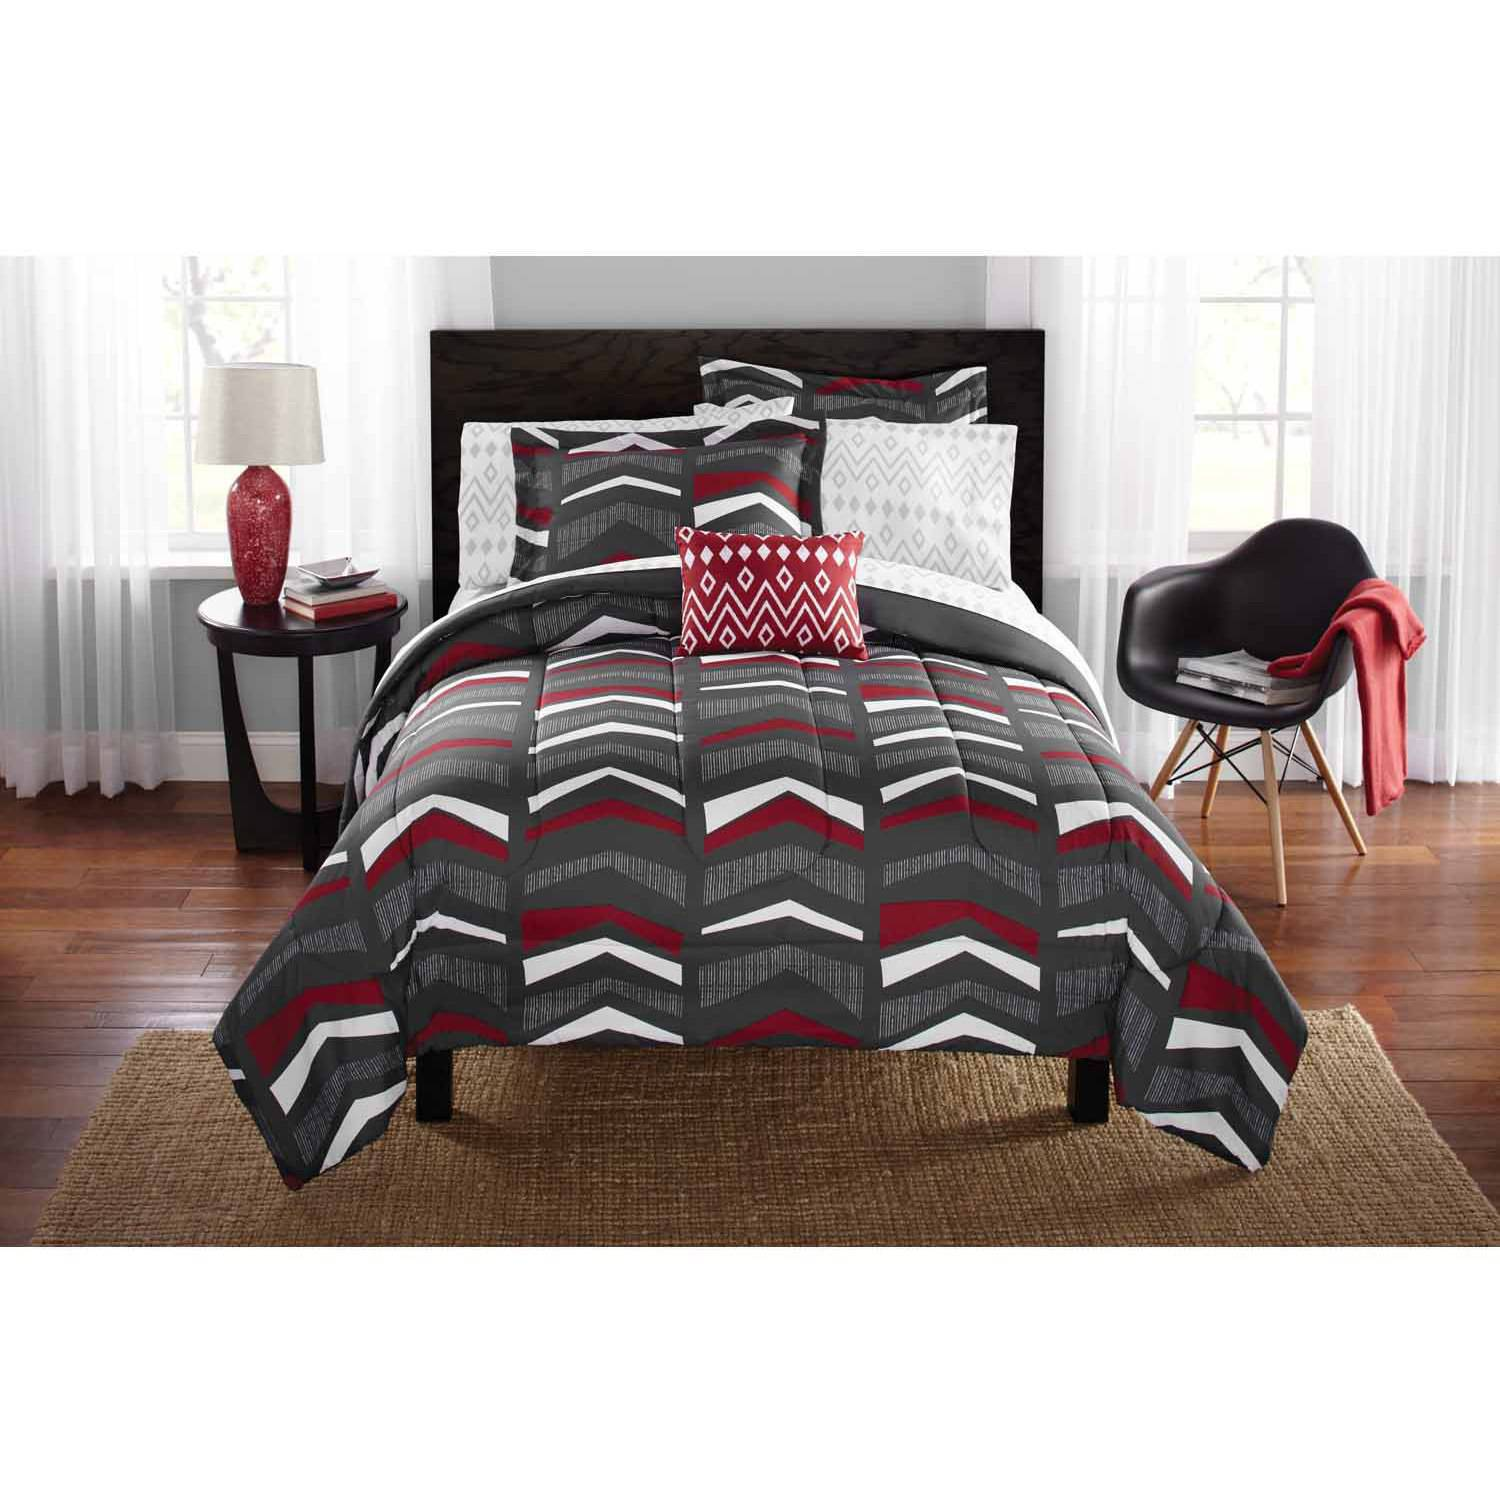 Mainstays Tribal Chevron Bed in a Bag Bedding Set